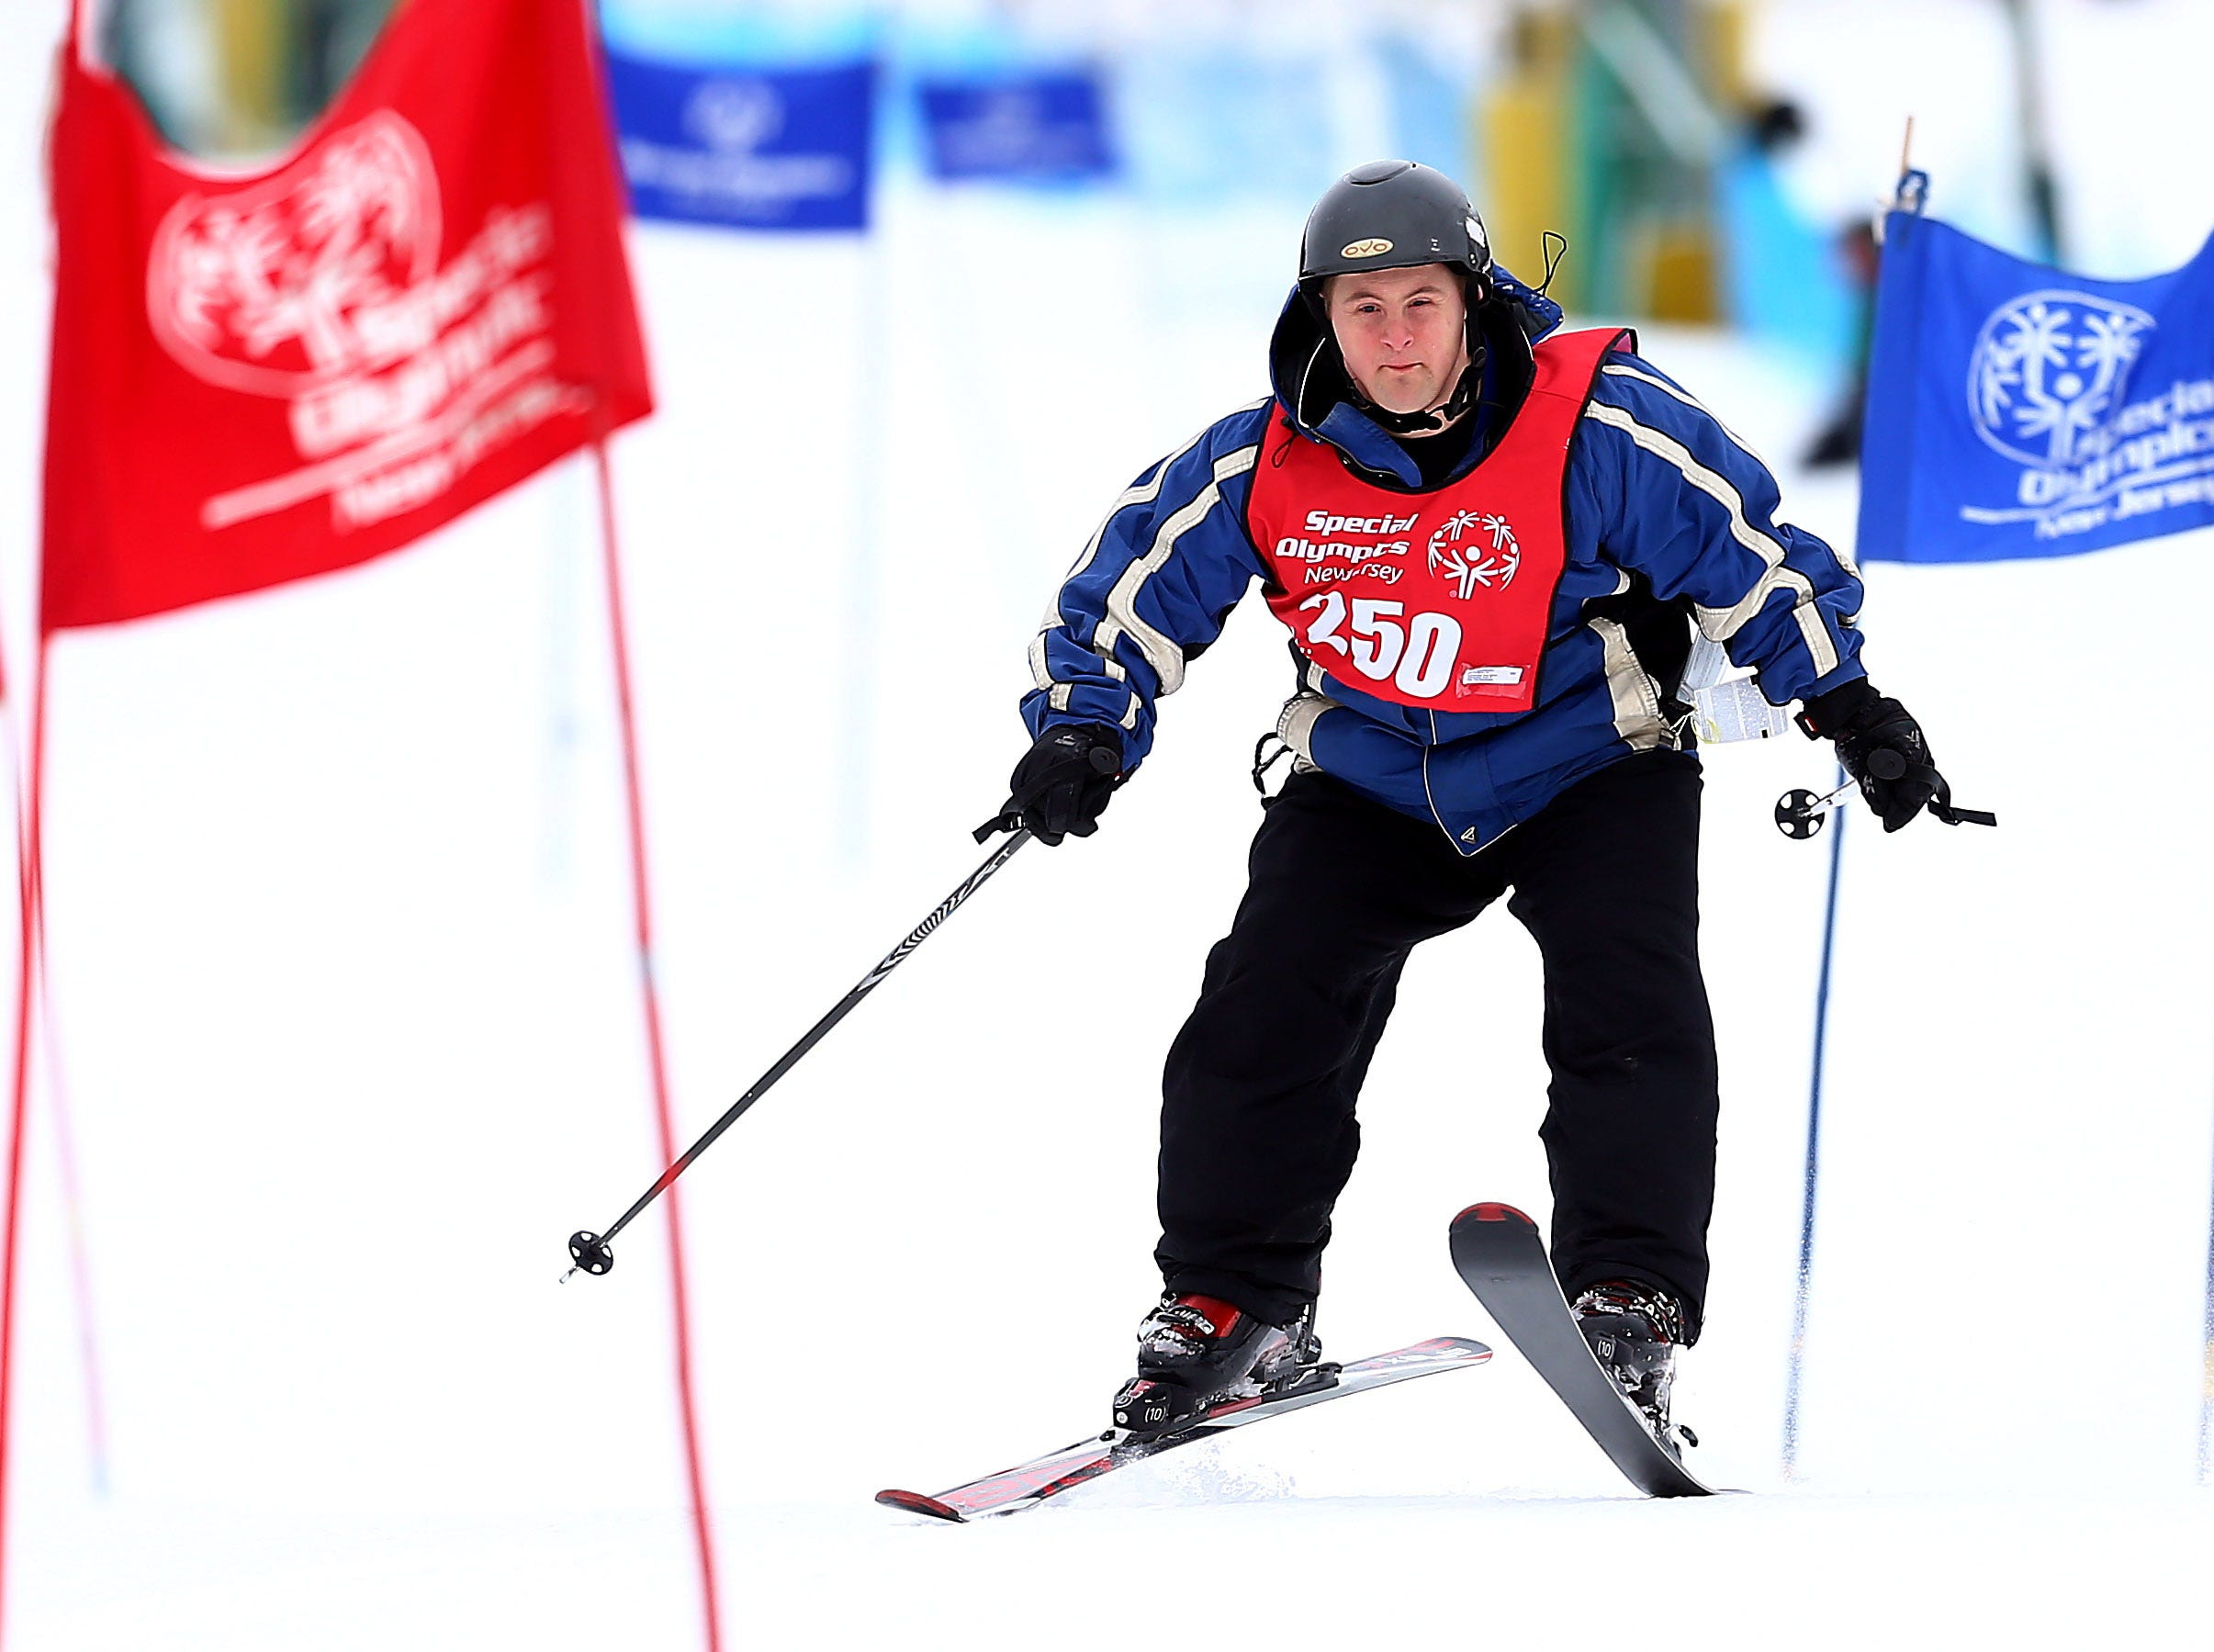 Special Olympics athlete Todd Gensheimer of Warren competes in the Giant Slalom at Mountain Creek during the Special Olympics New Jersey Winter Games. February 6, 2018. Vernon Twp, NJ.